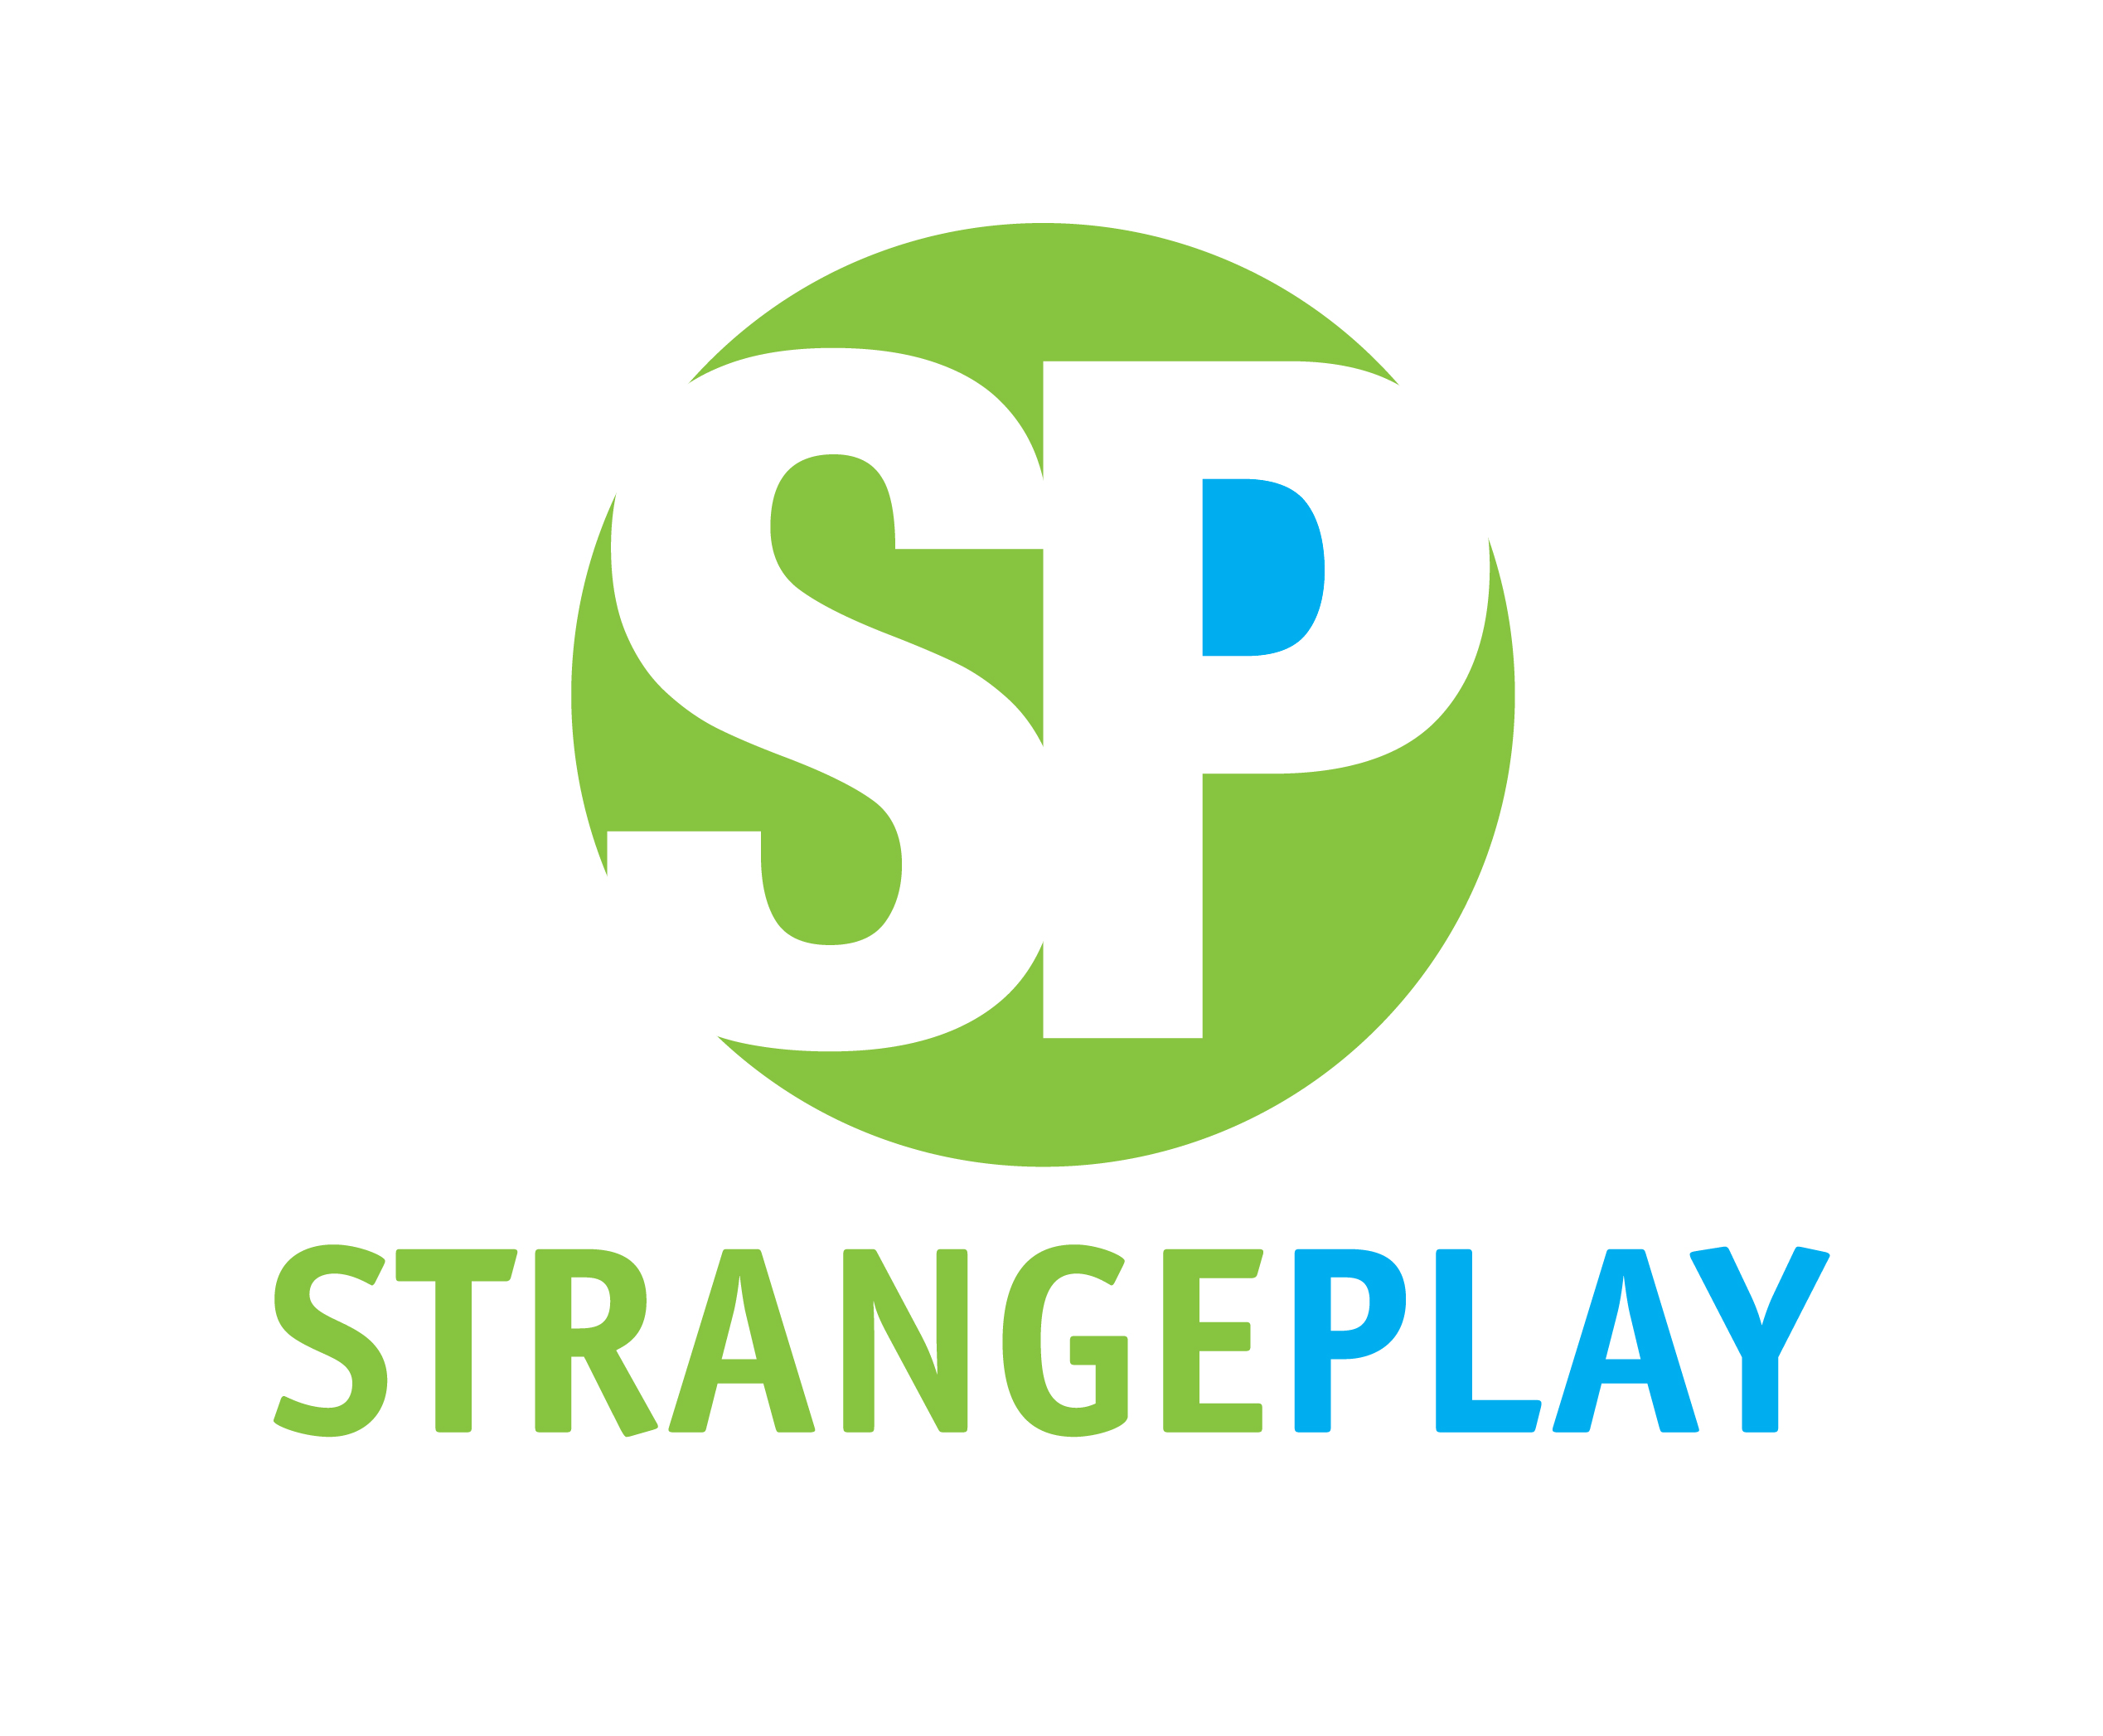 Logo Design by Juan Garizabalo - Entry No. 26 in the Logo Design Contest Strange Play Logo Design.